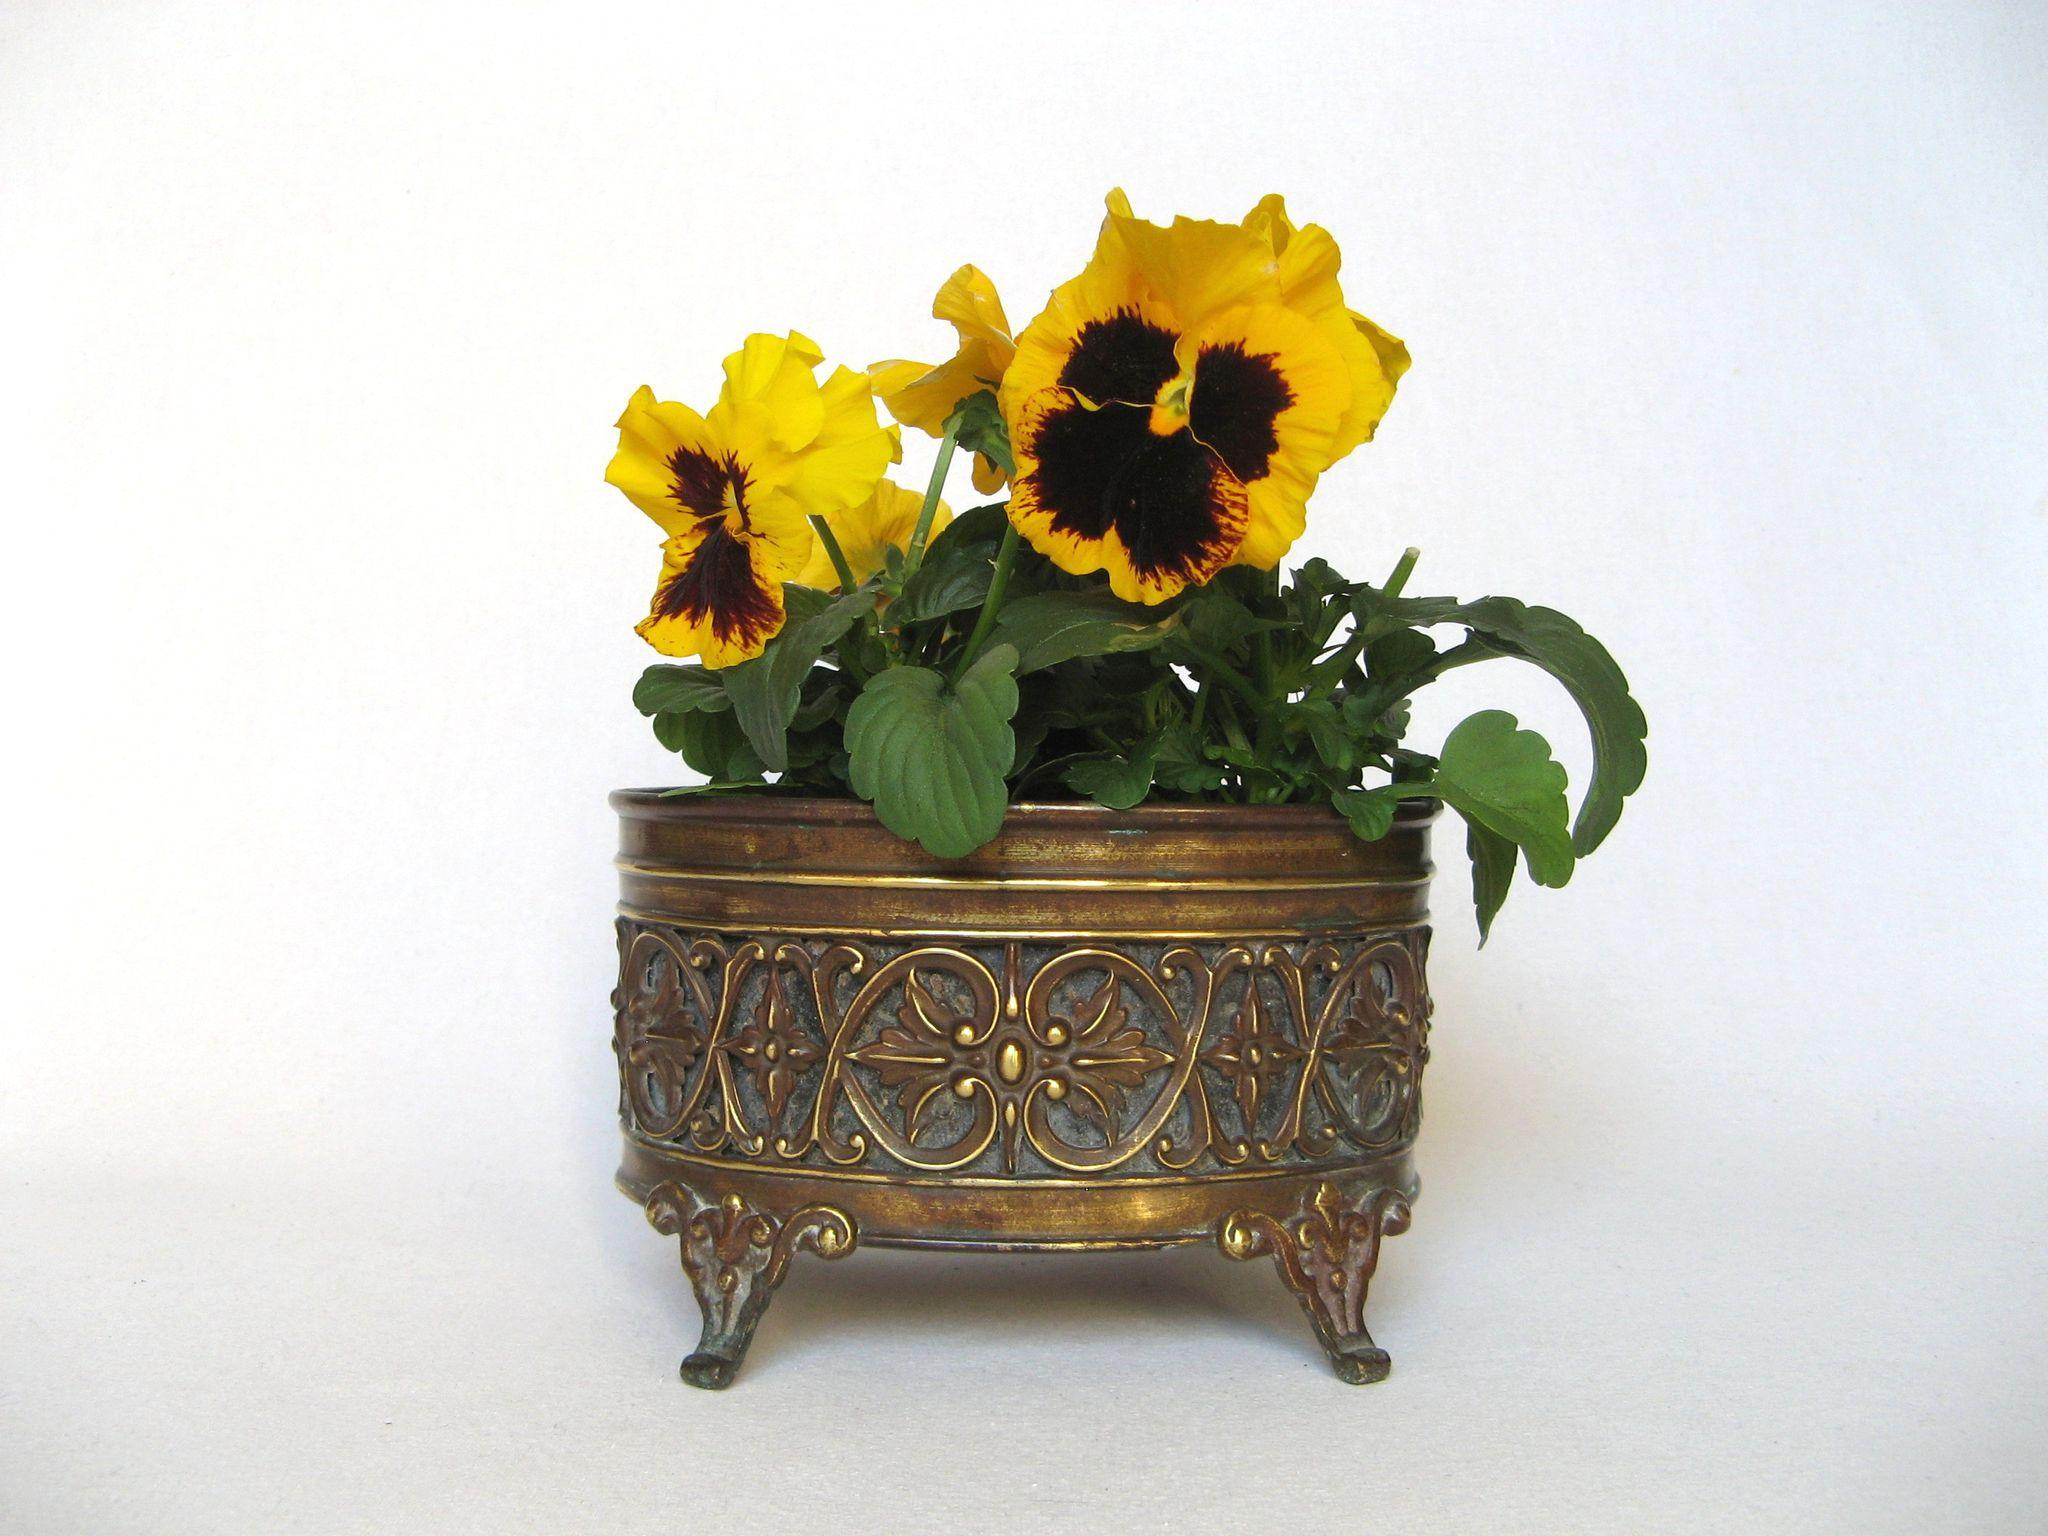 petite french brass jardiniere planter 19th century. Black Bedroom Furniture Sets. Home Design Ideas